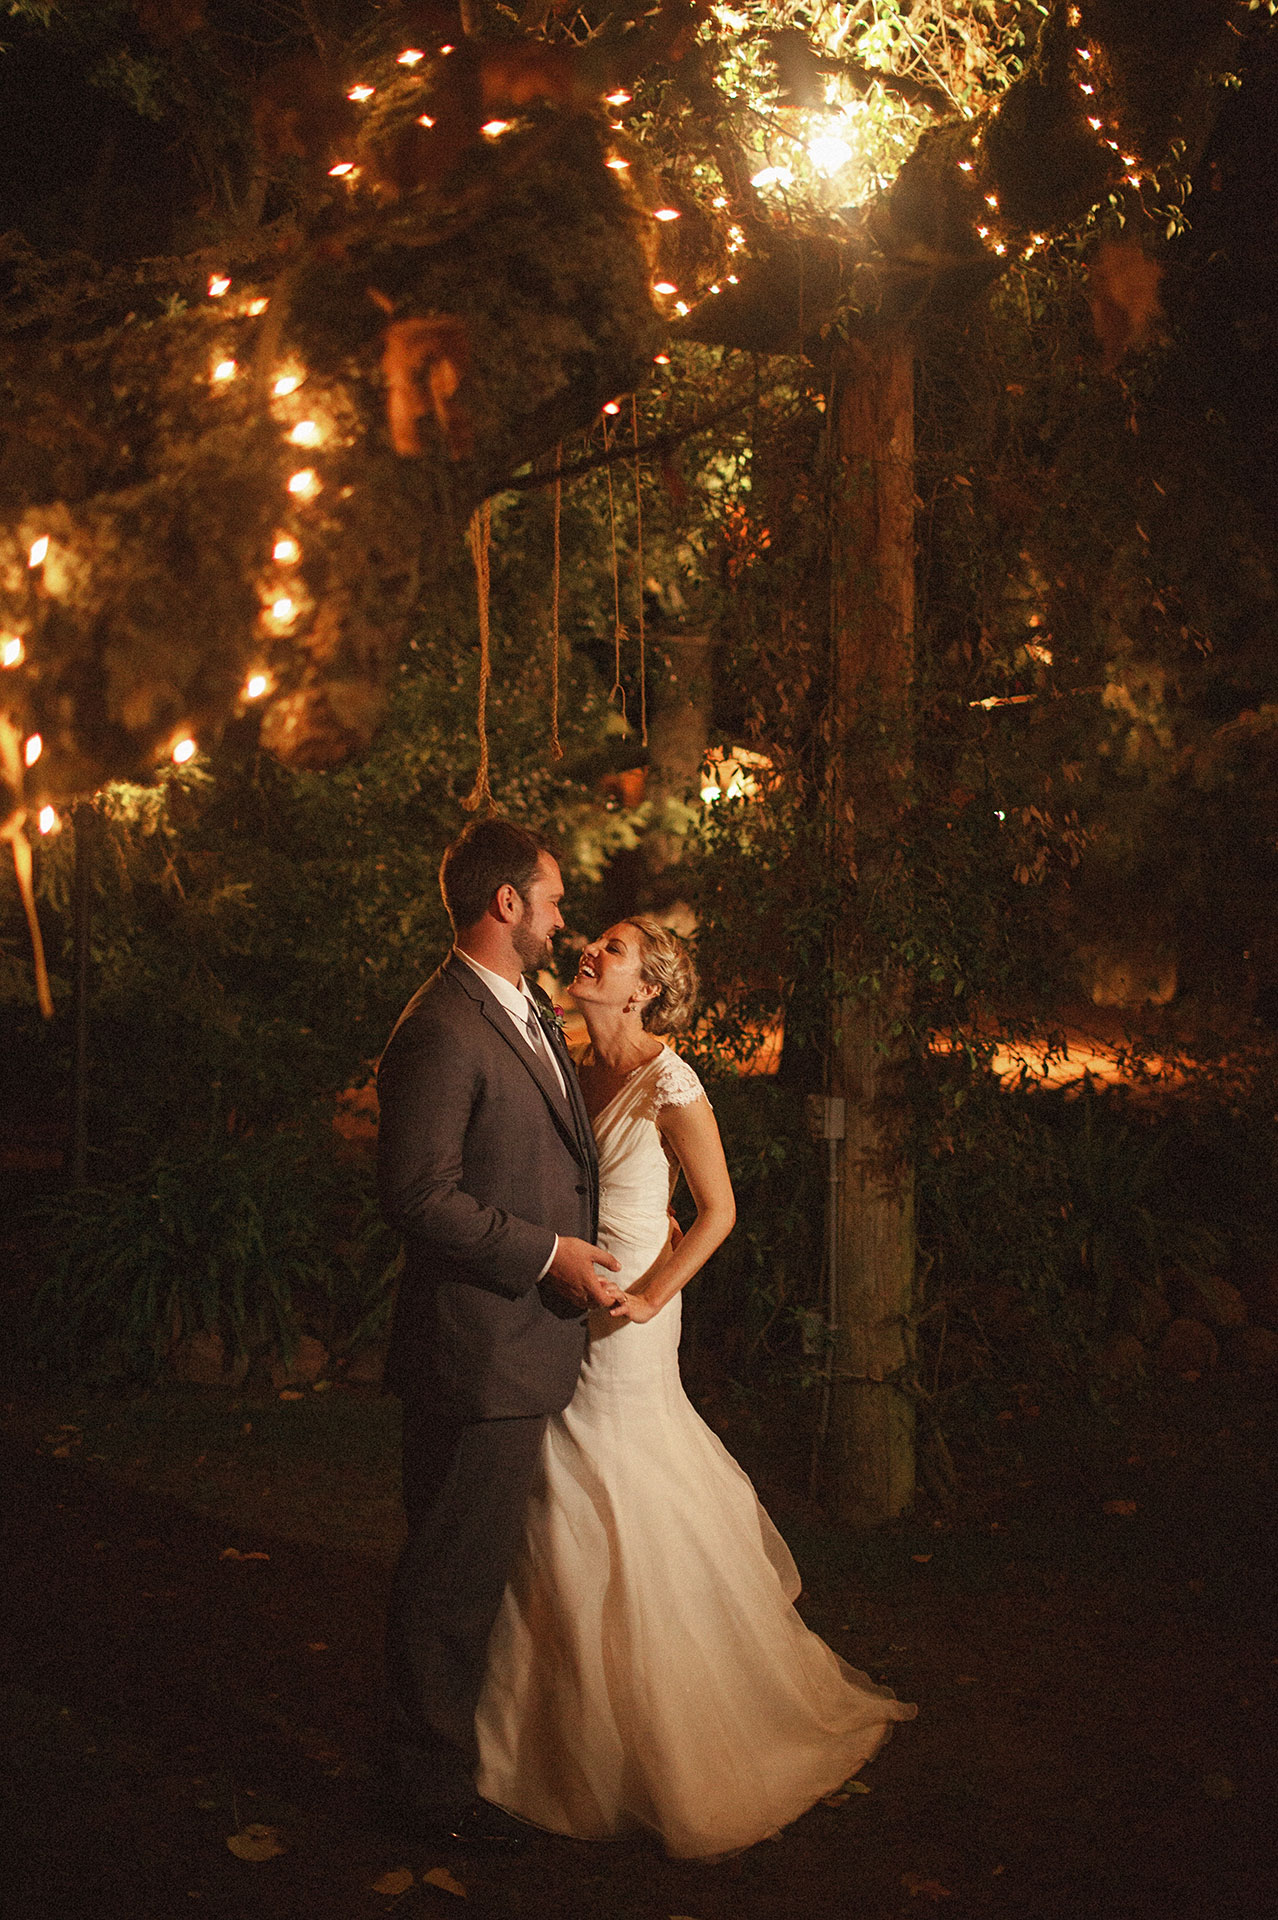 night time wedding photography at the vine hill house in sebastpol california by Heather Elizabeth Photography